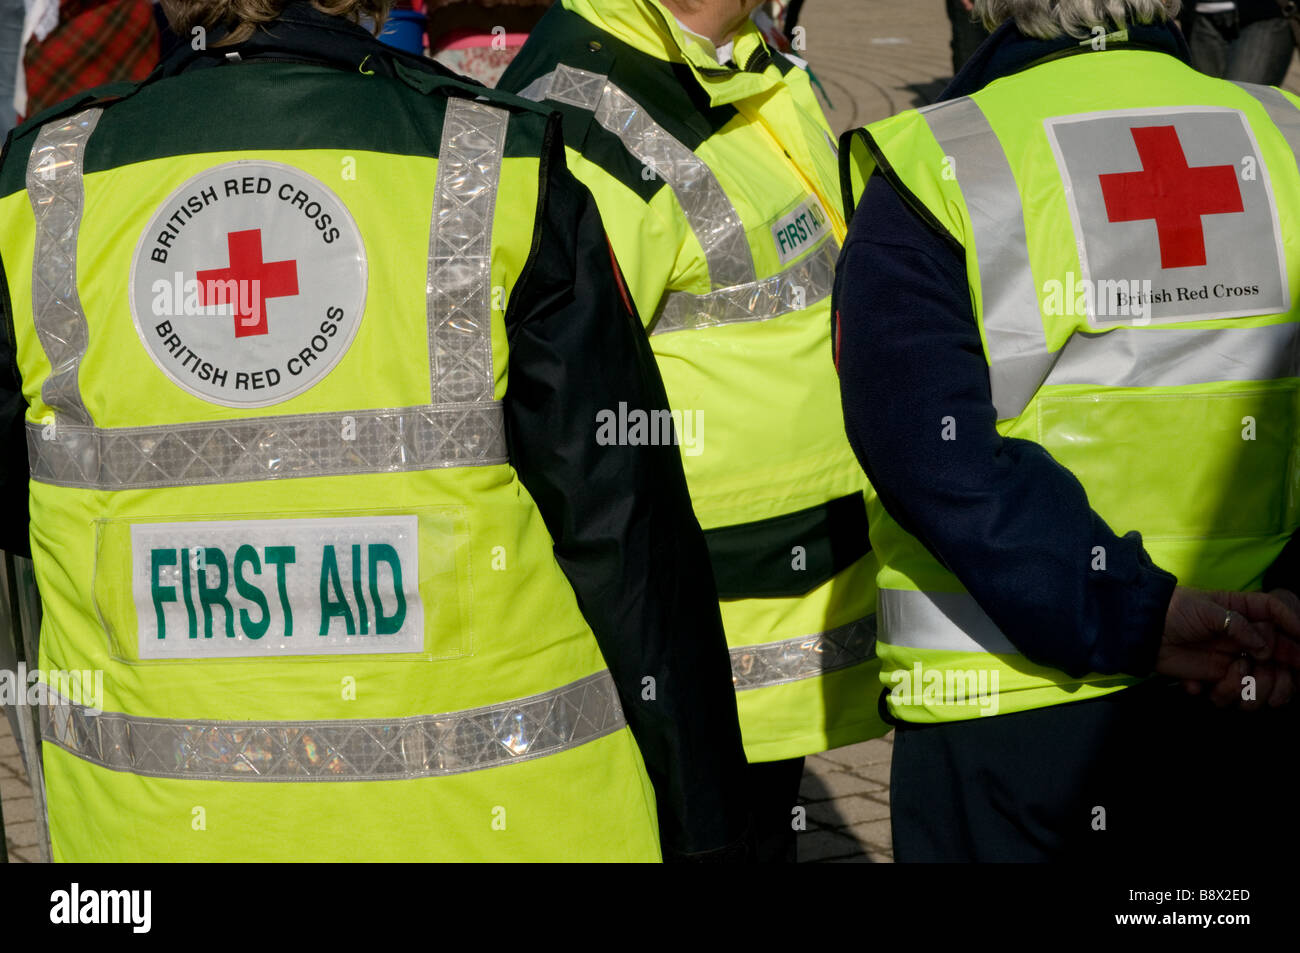 rear view of three First aid volunteer British Red Cross workers wearing high visibility yellow jackets, UK - Stock Image